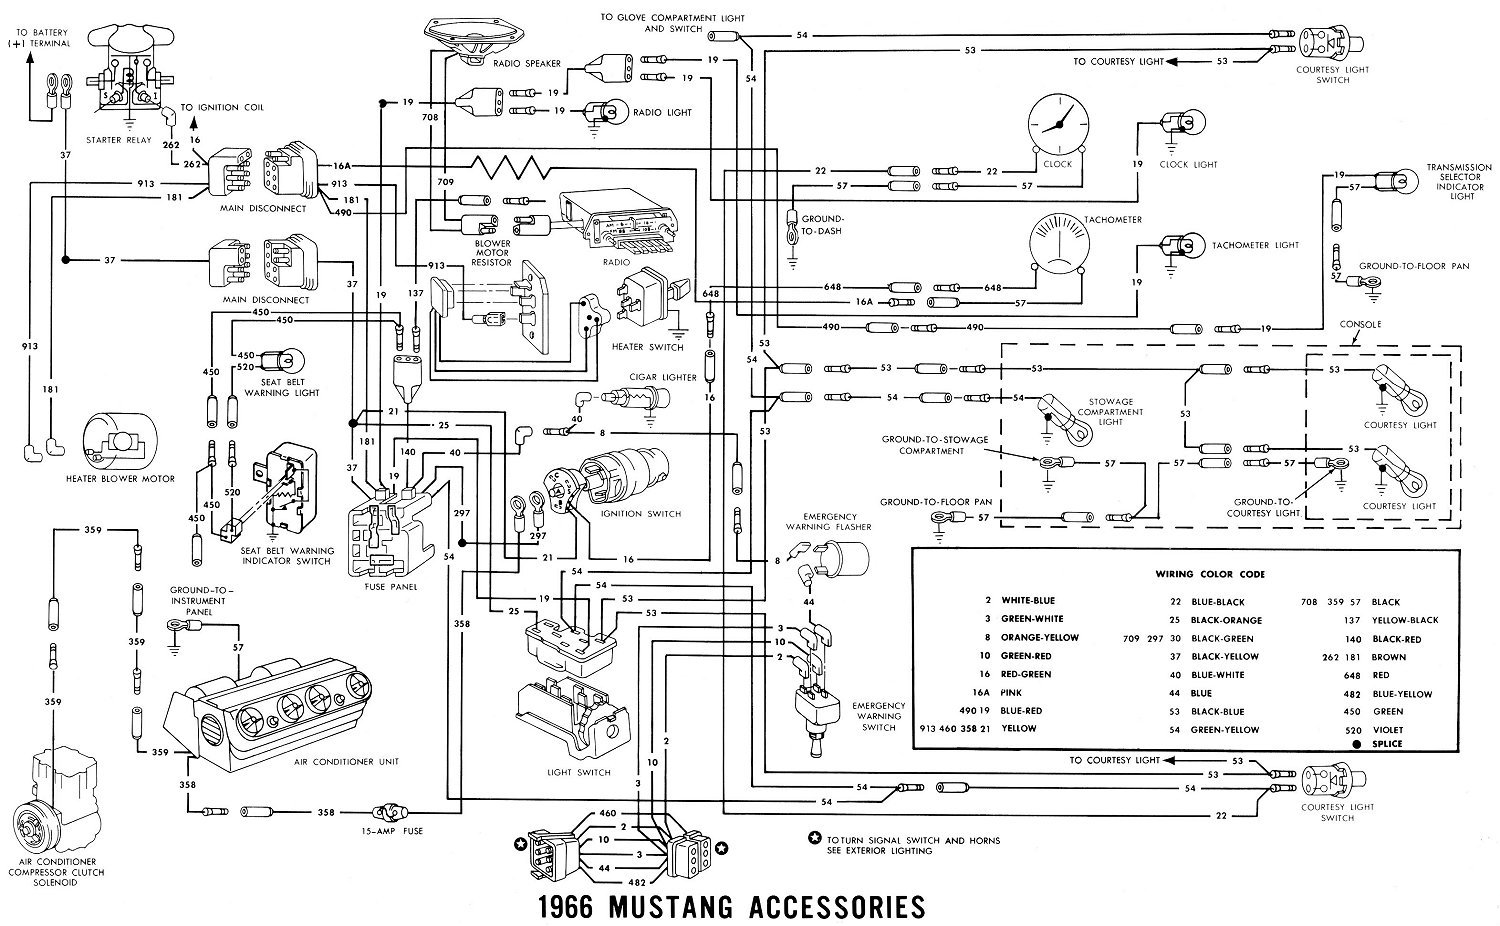 cadillac 500 Motor diagram